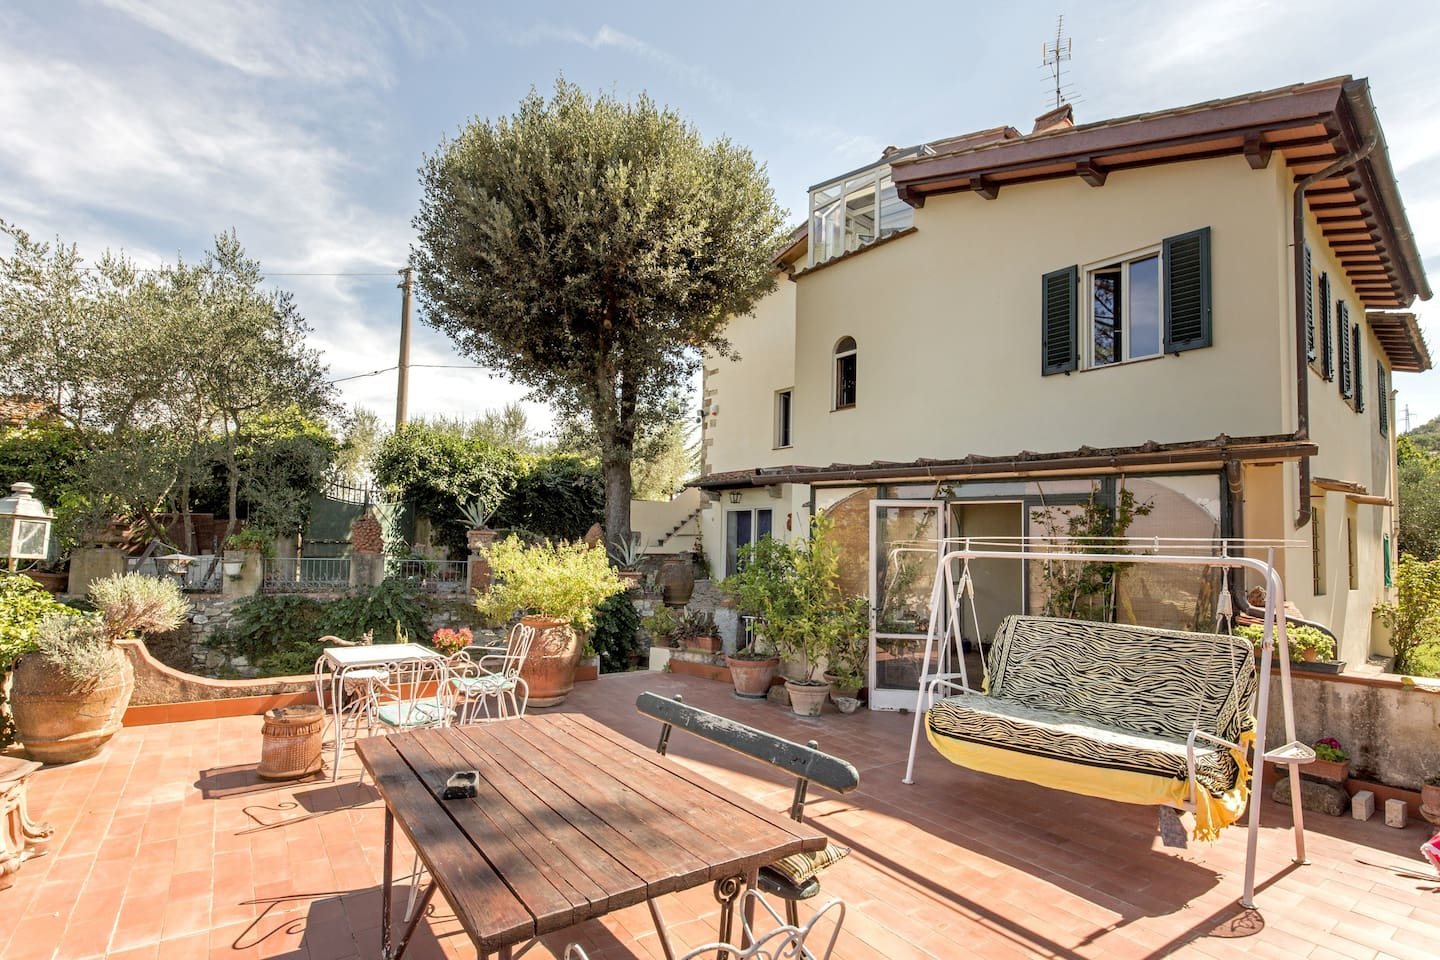 The apartmente and the terrace